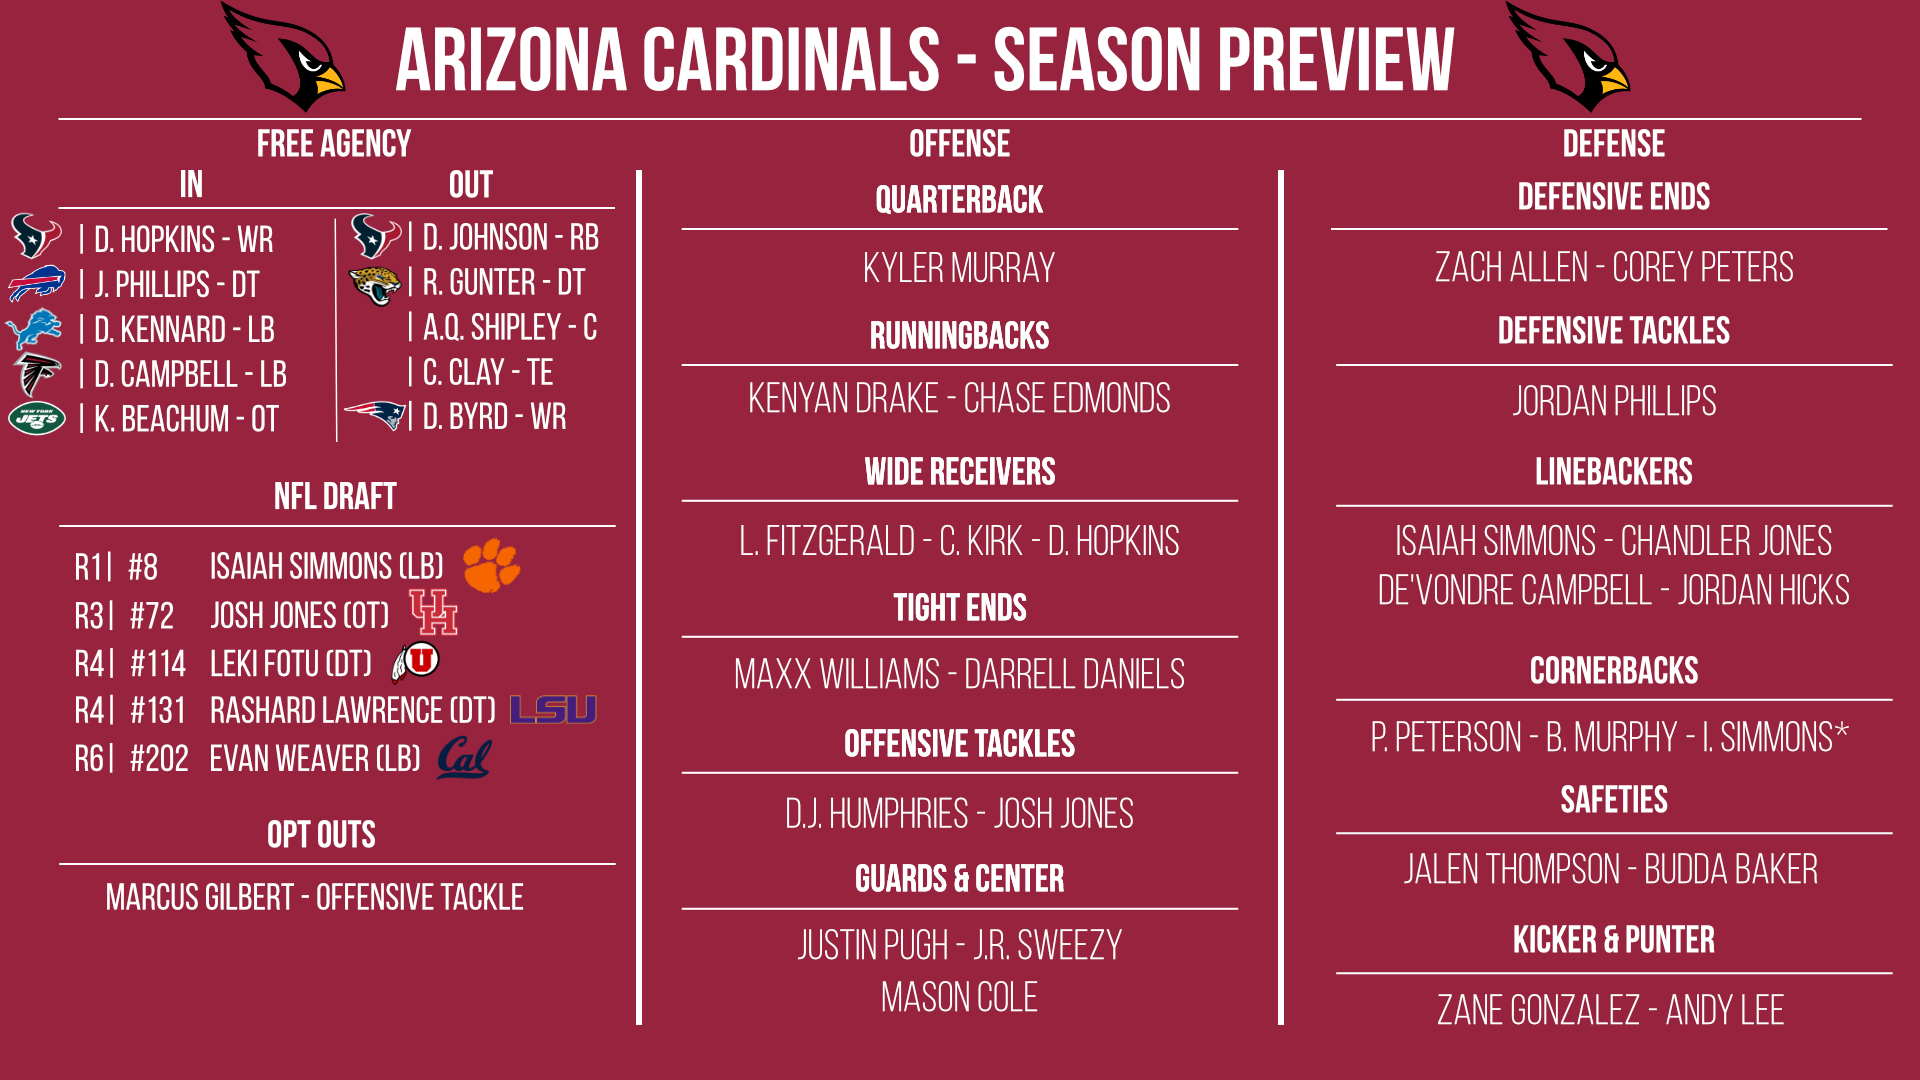 Arizona Cardinals preview